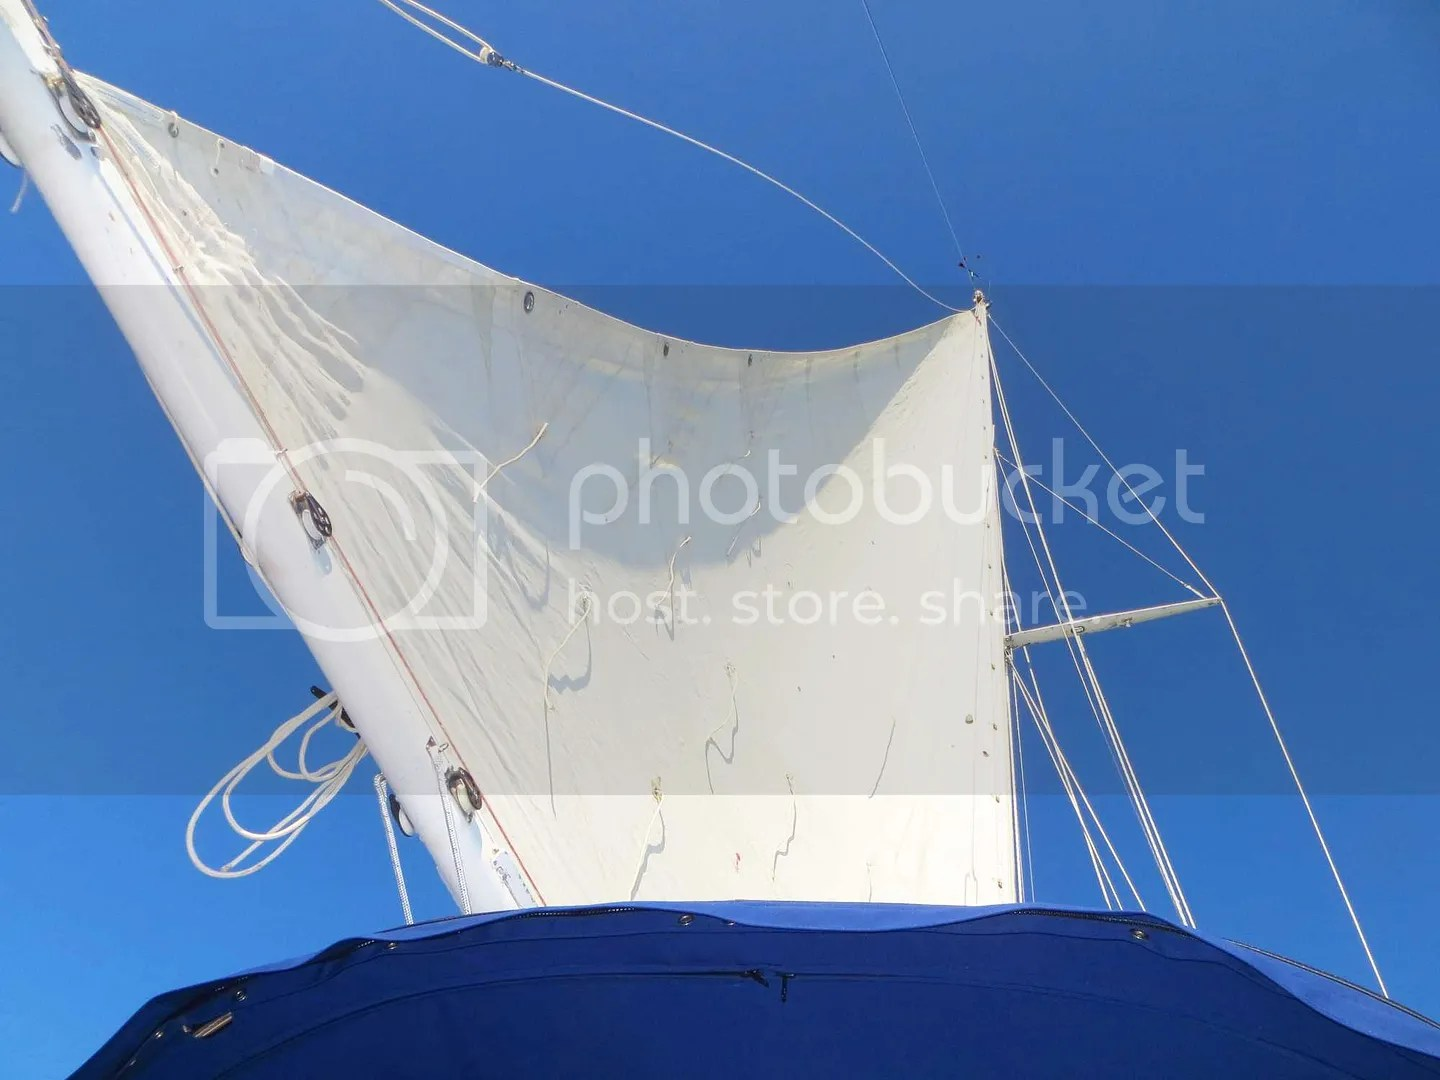 The mainsail underway